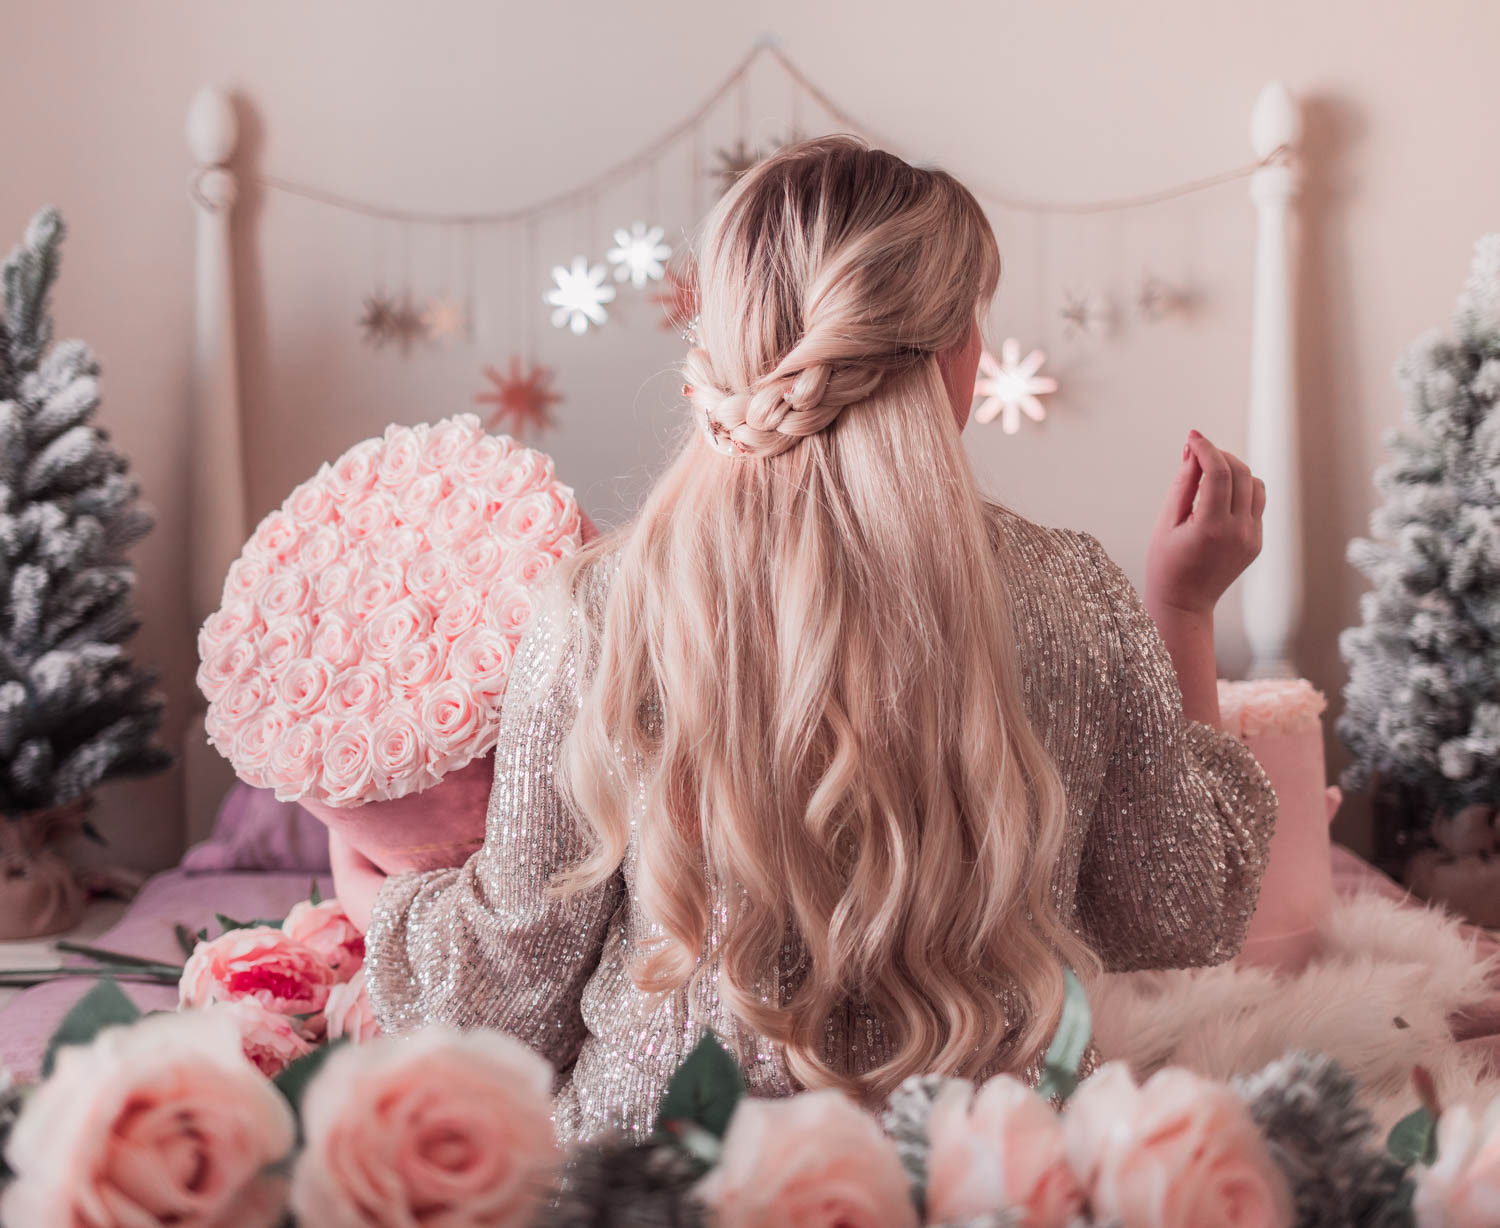 Elizabeth Hugen from Lizzie in Lace shares a simple braided hairstyle